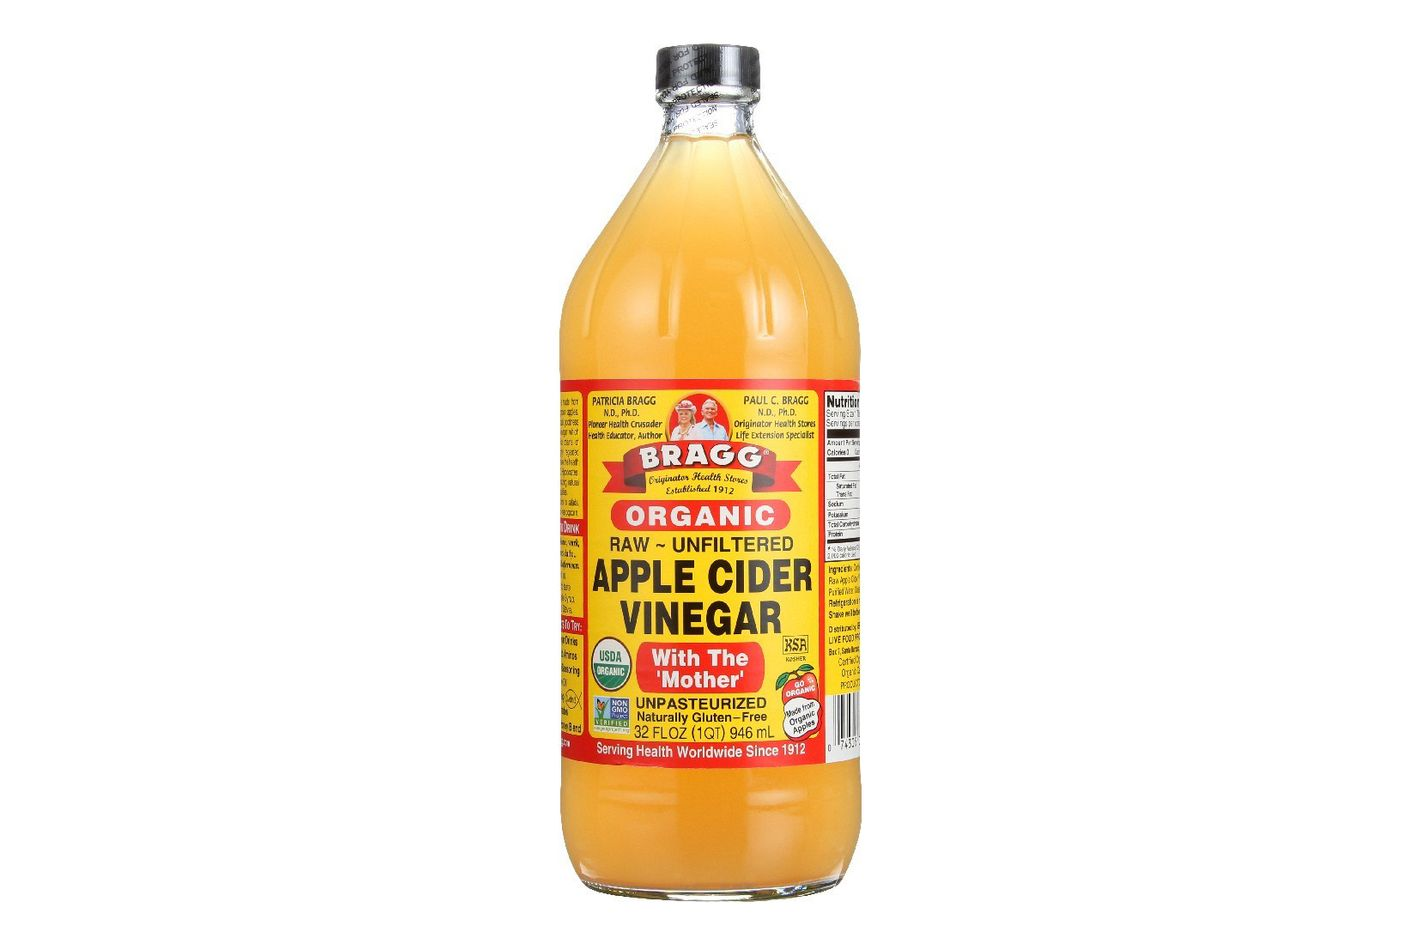 Bragg Organic Raw Apple Cider Vinegar, 32 oz.